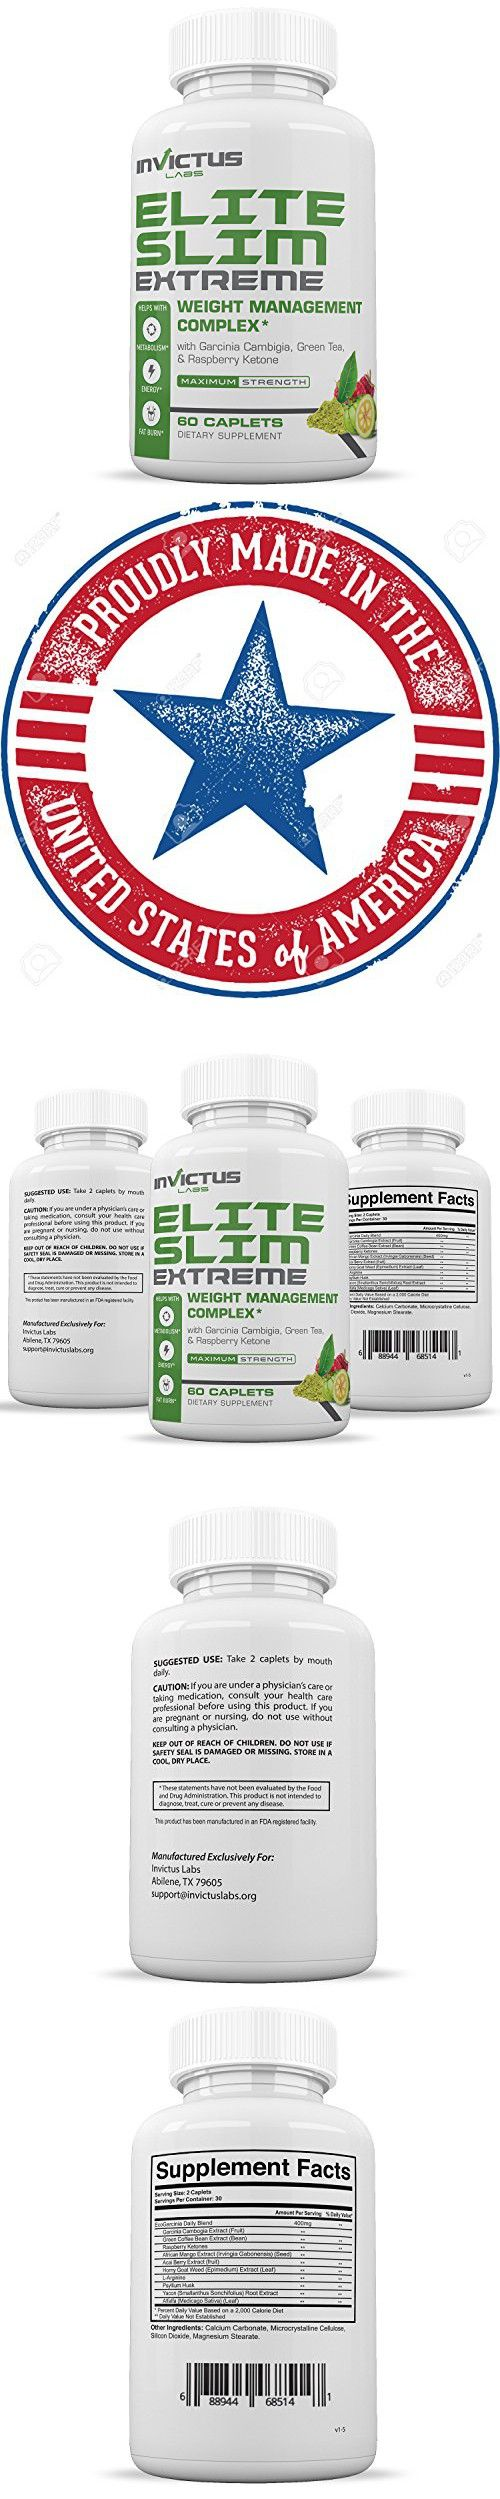 Elite Slim EXTREME-Extreme Weight Loss Pills That Work with Garcinia Cambogia|Green Coffee Bean|Raspberry Ketone|Acai Berry|Yacon Extract|Green Tea Extract|Appetite Suppressant & Diet Pill 60 Caps